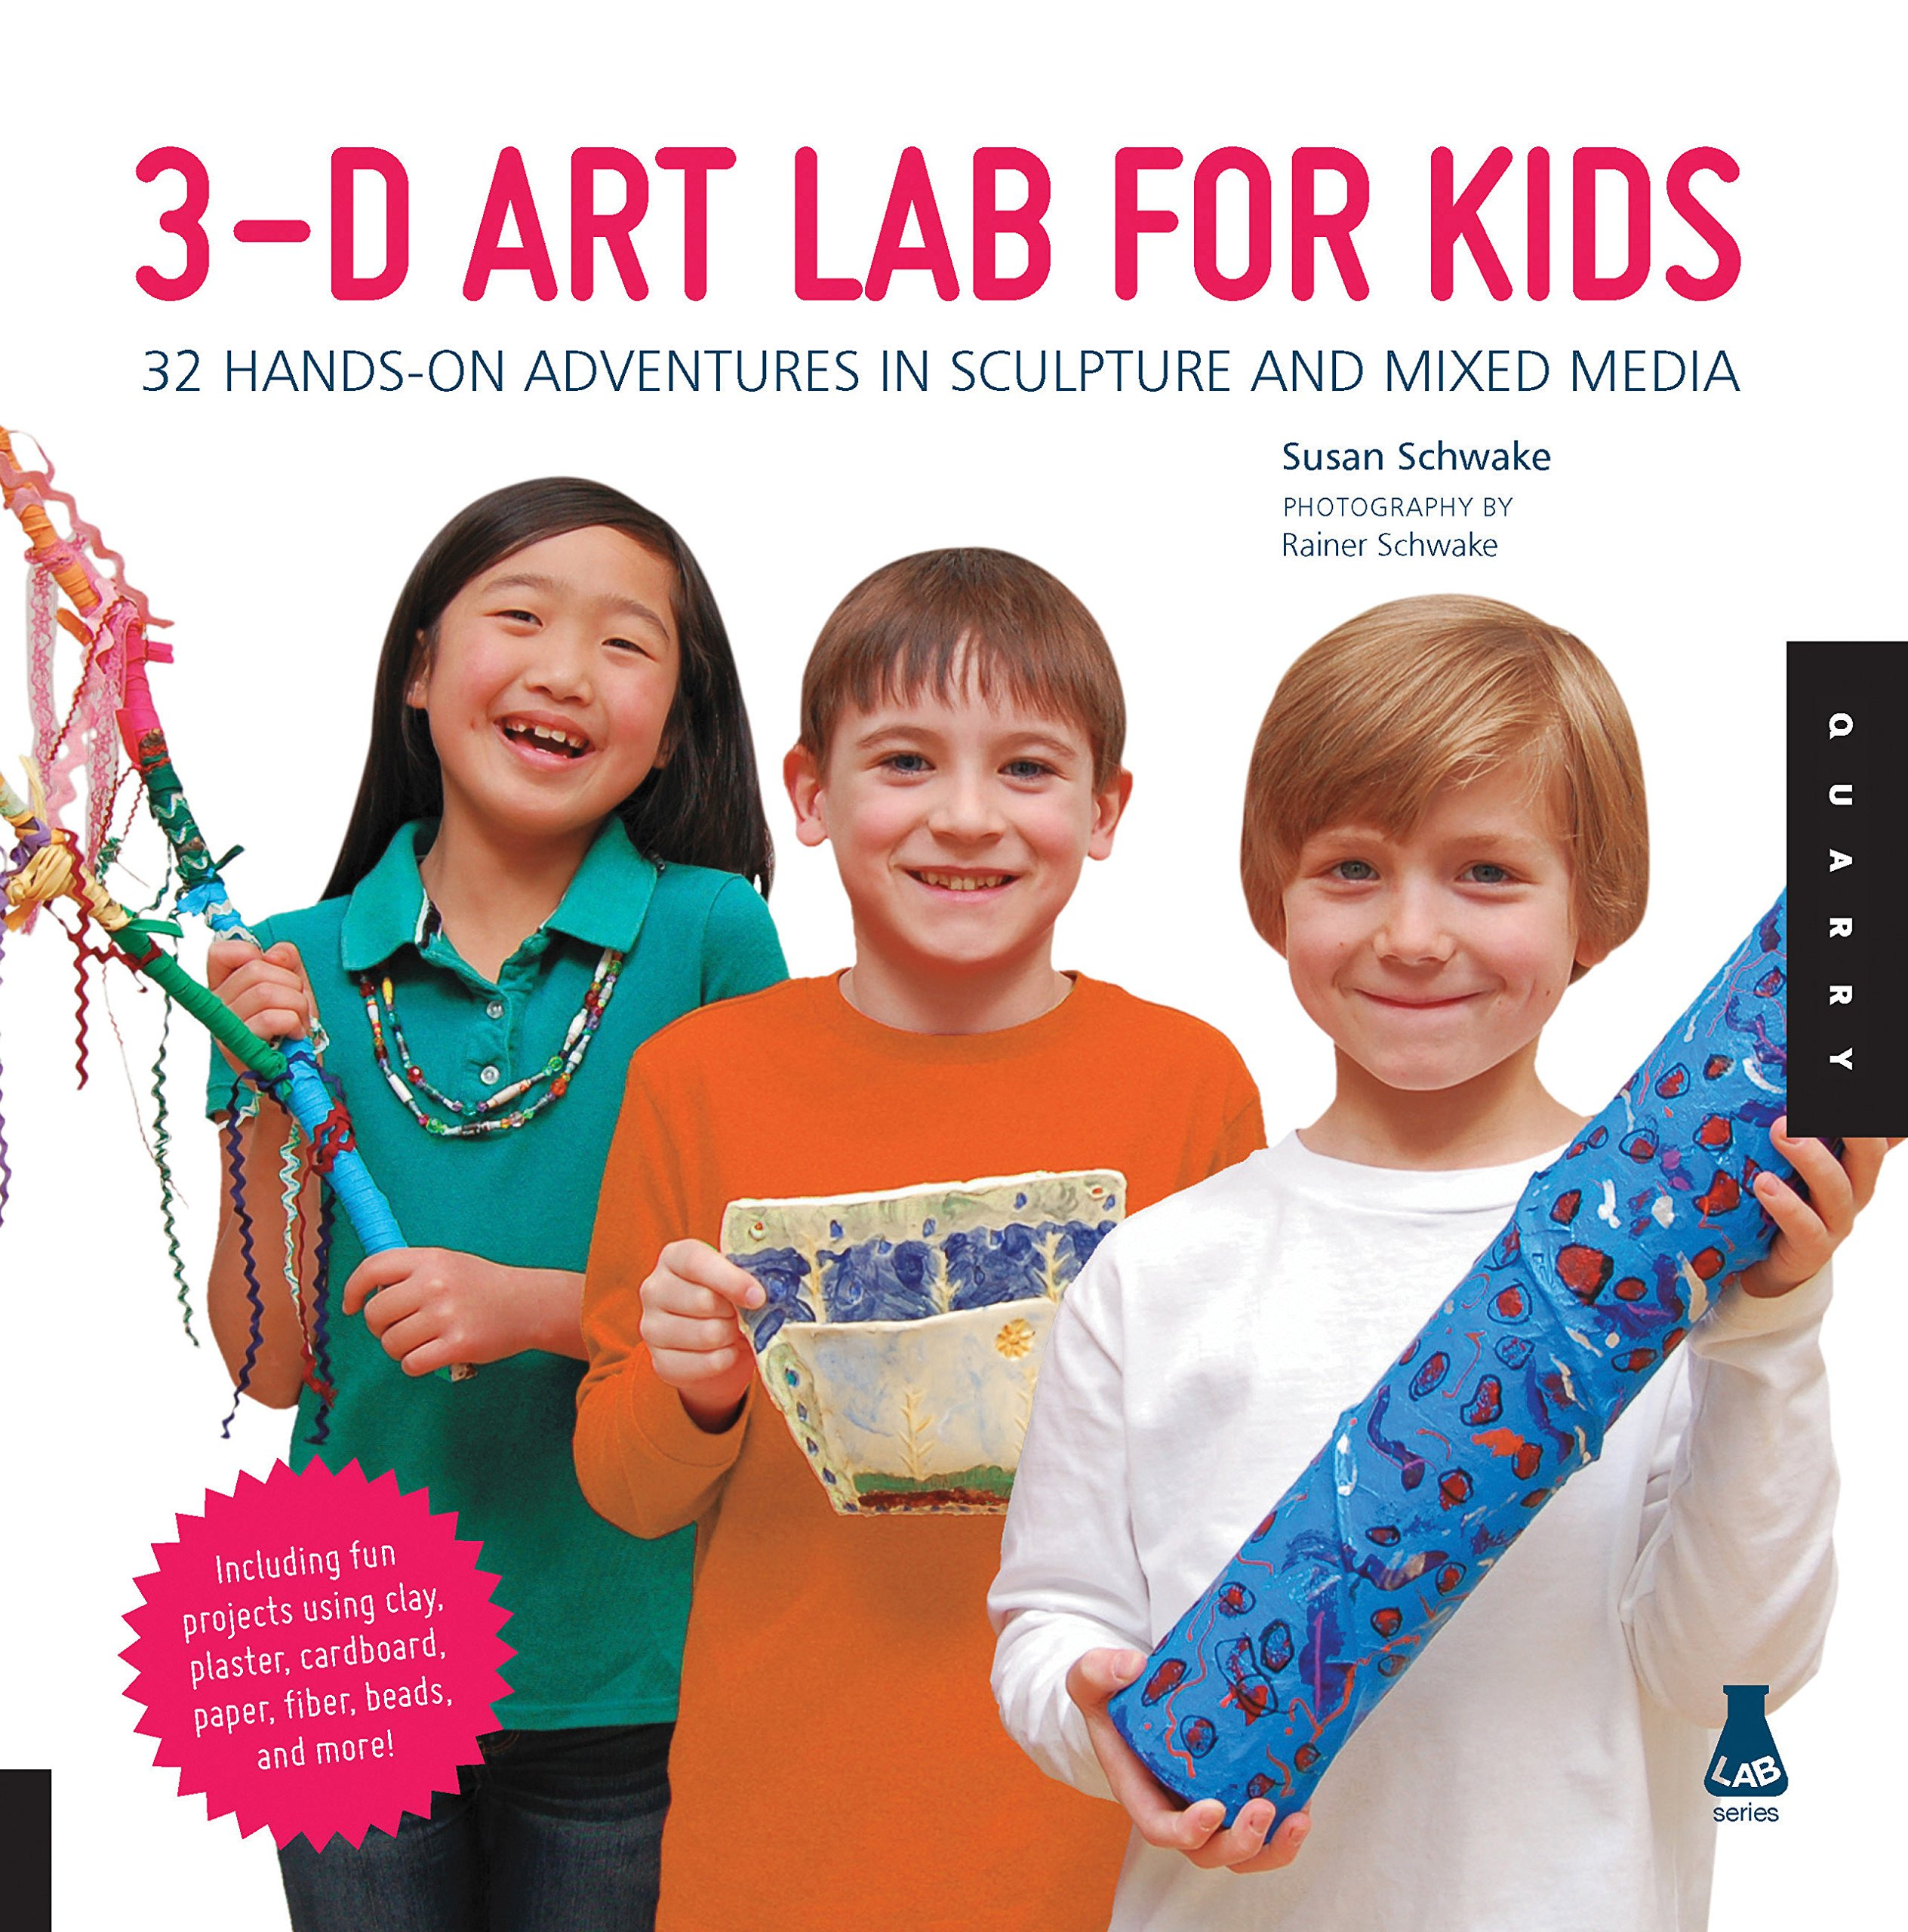 3D Art Lab for Kids: 32 Hands-on Adventures in Sculpture and Mixed Media - Including fun projects using clay, plaster, cardboard, paper, fiber beads and more! (Lab Series) by Quayside Publishing (Image #1)